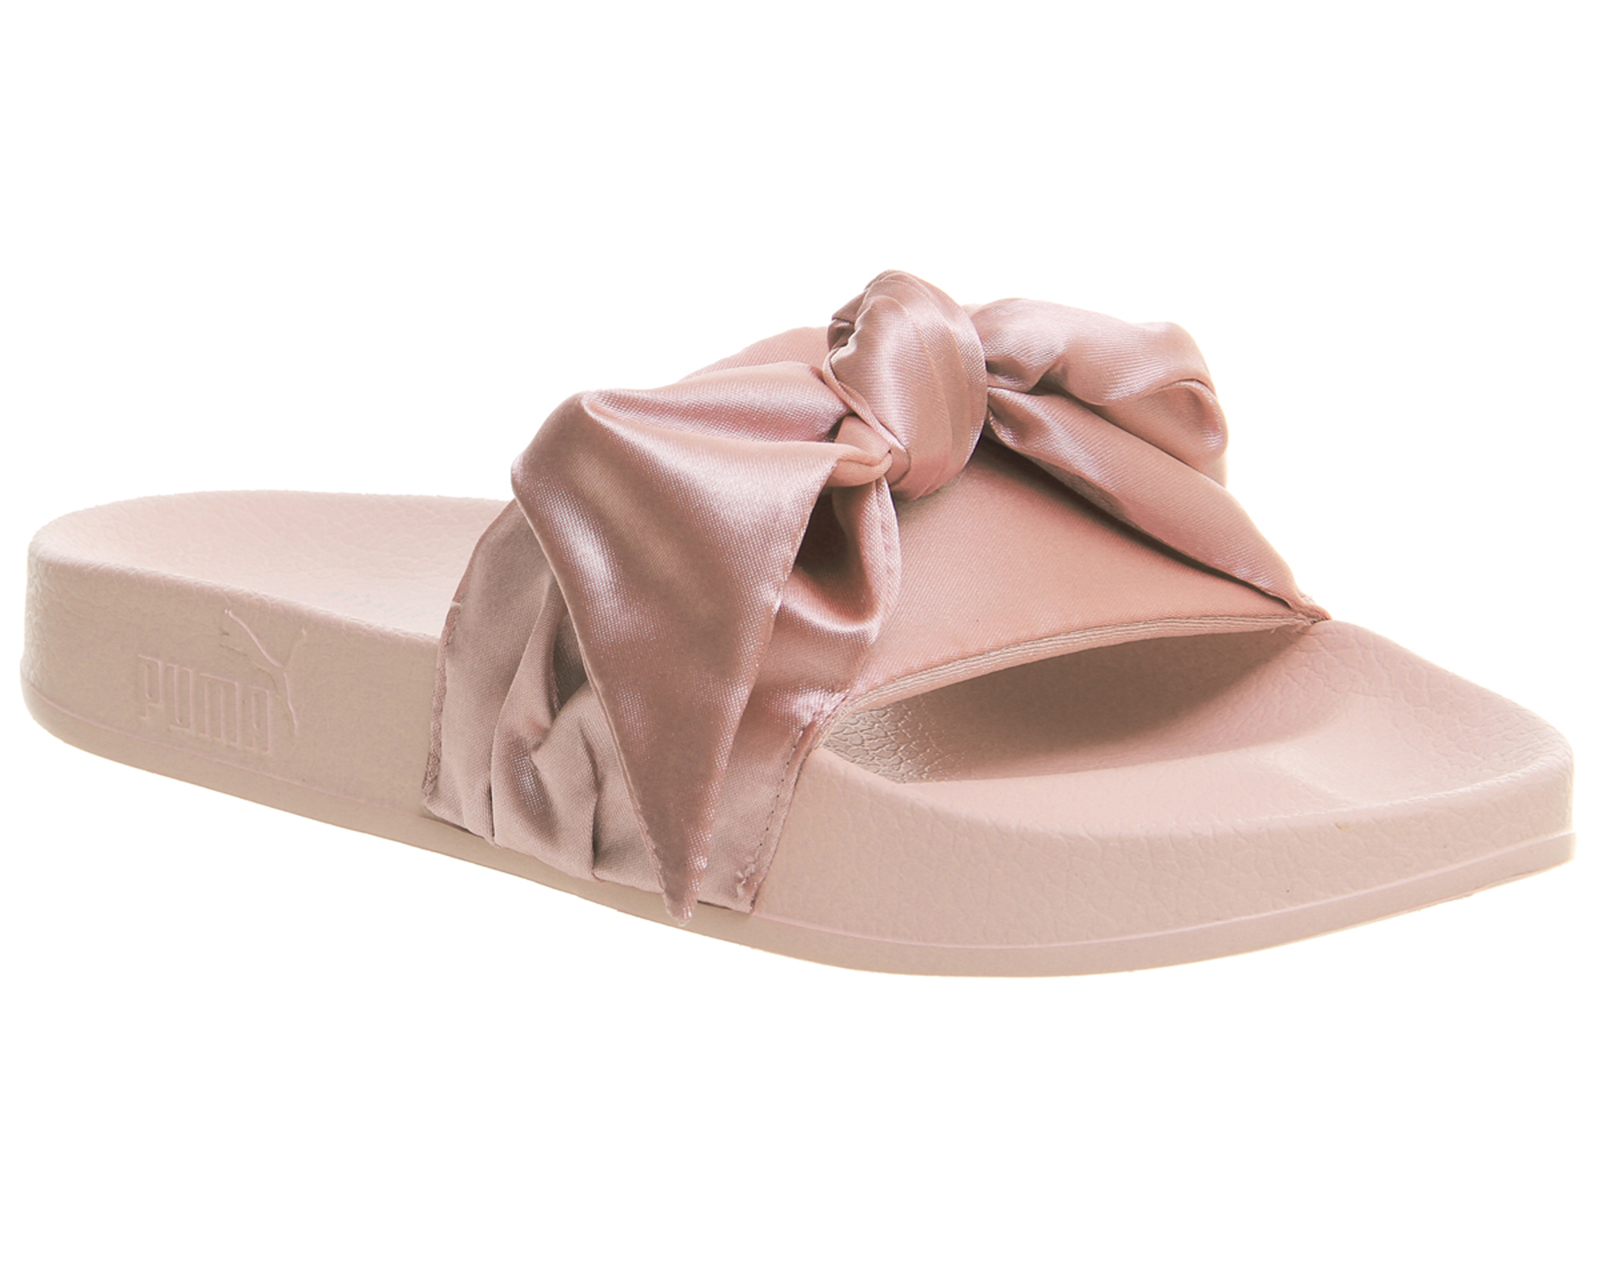 Womens-Puma-Fenty-Ribbon-Slide-PINK-Trainers-Shoes